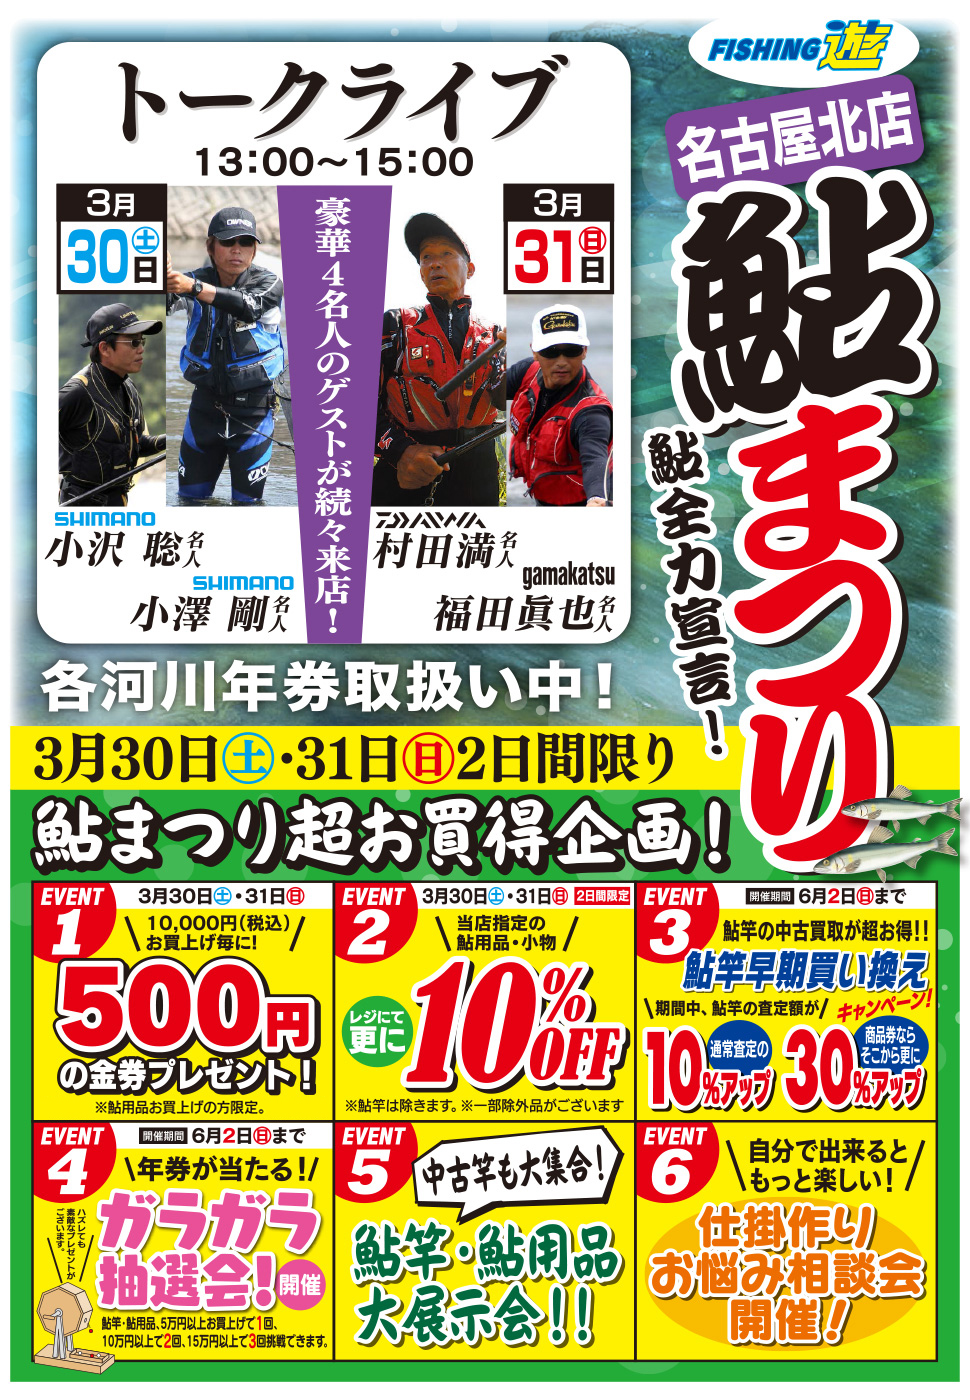 <a href=&quot;http://fishing-you.com/event/190330_31kita&quot;>名古屋北店 鮎まつり</a>